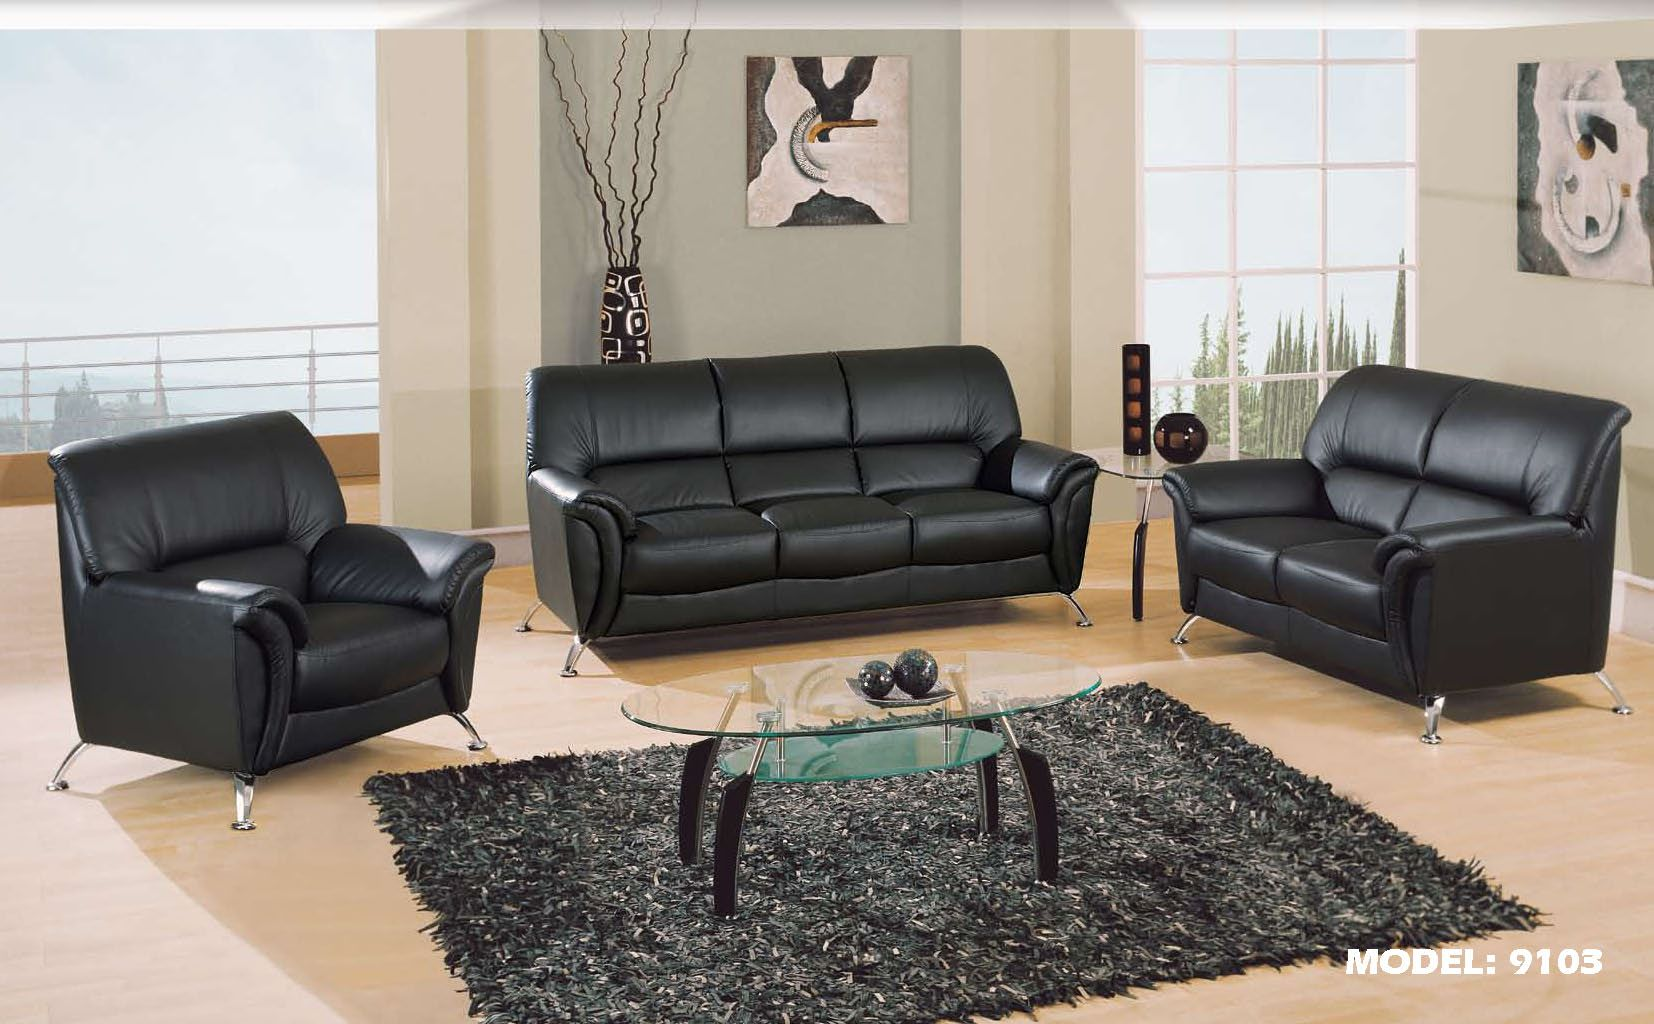 Images of sofa set designs google search sofa for Living room furniture ideas